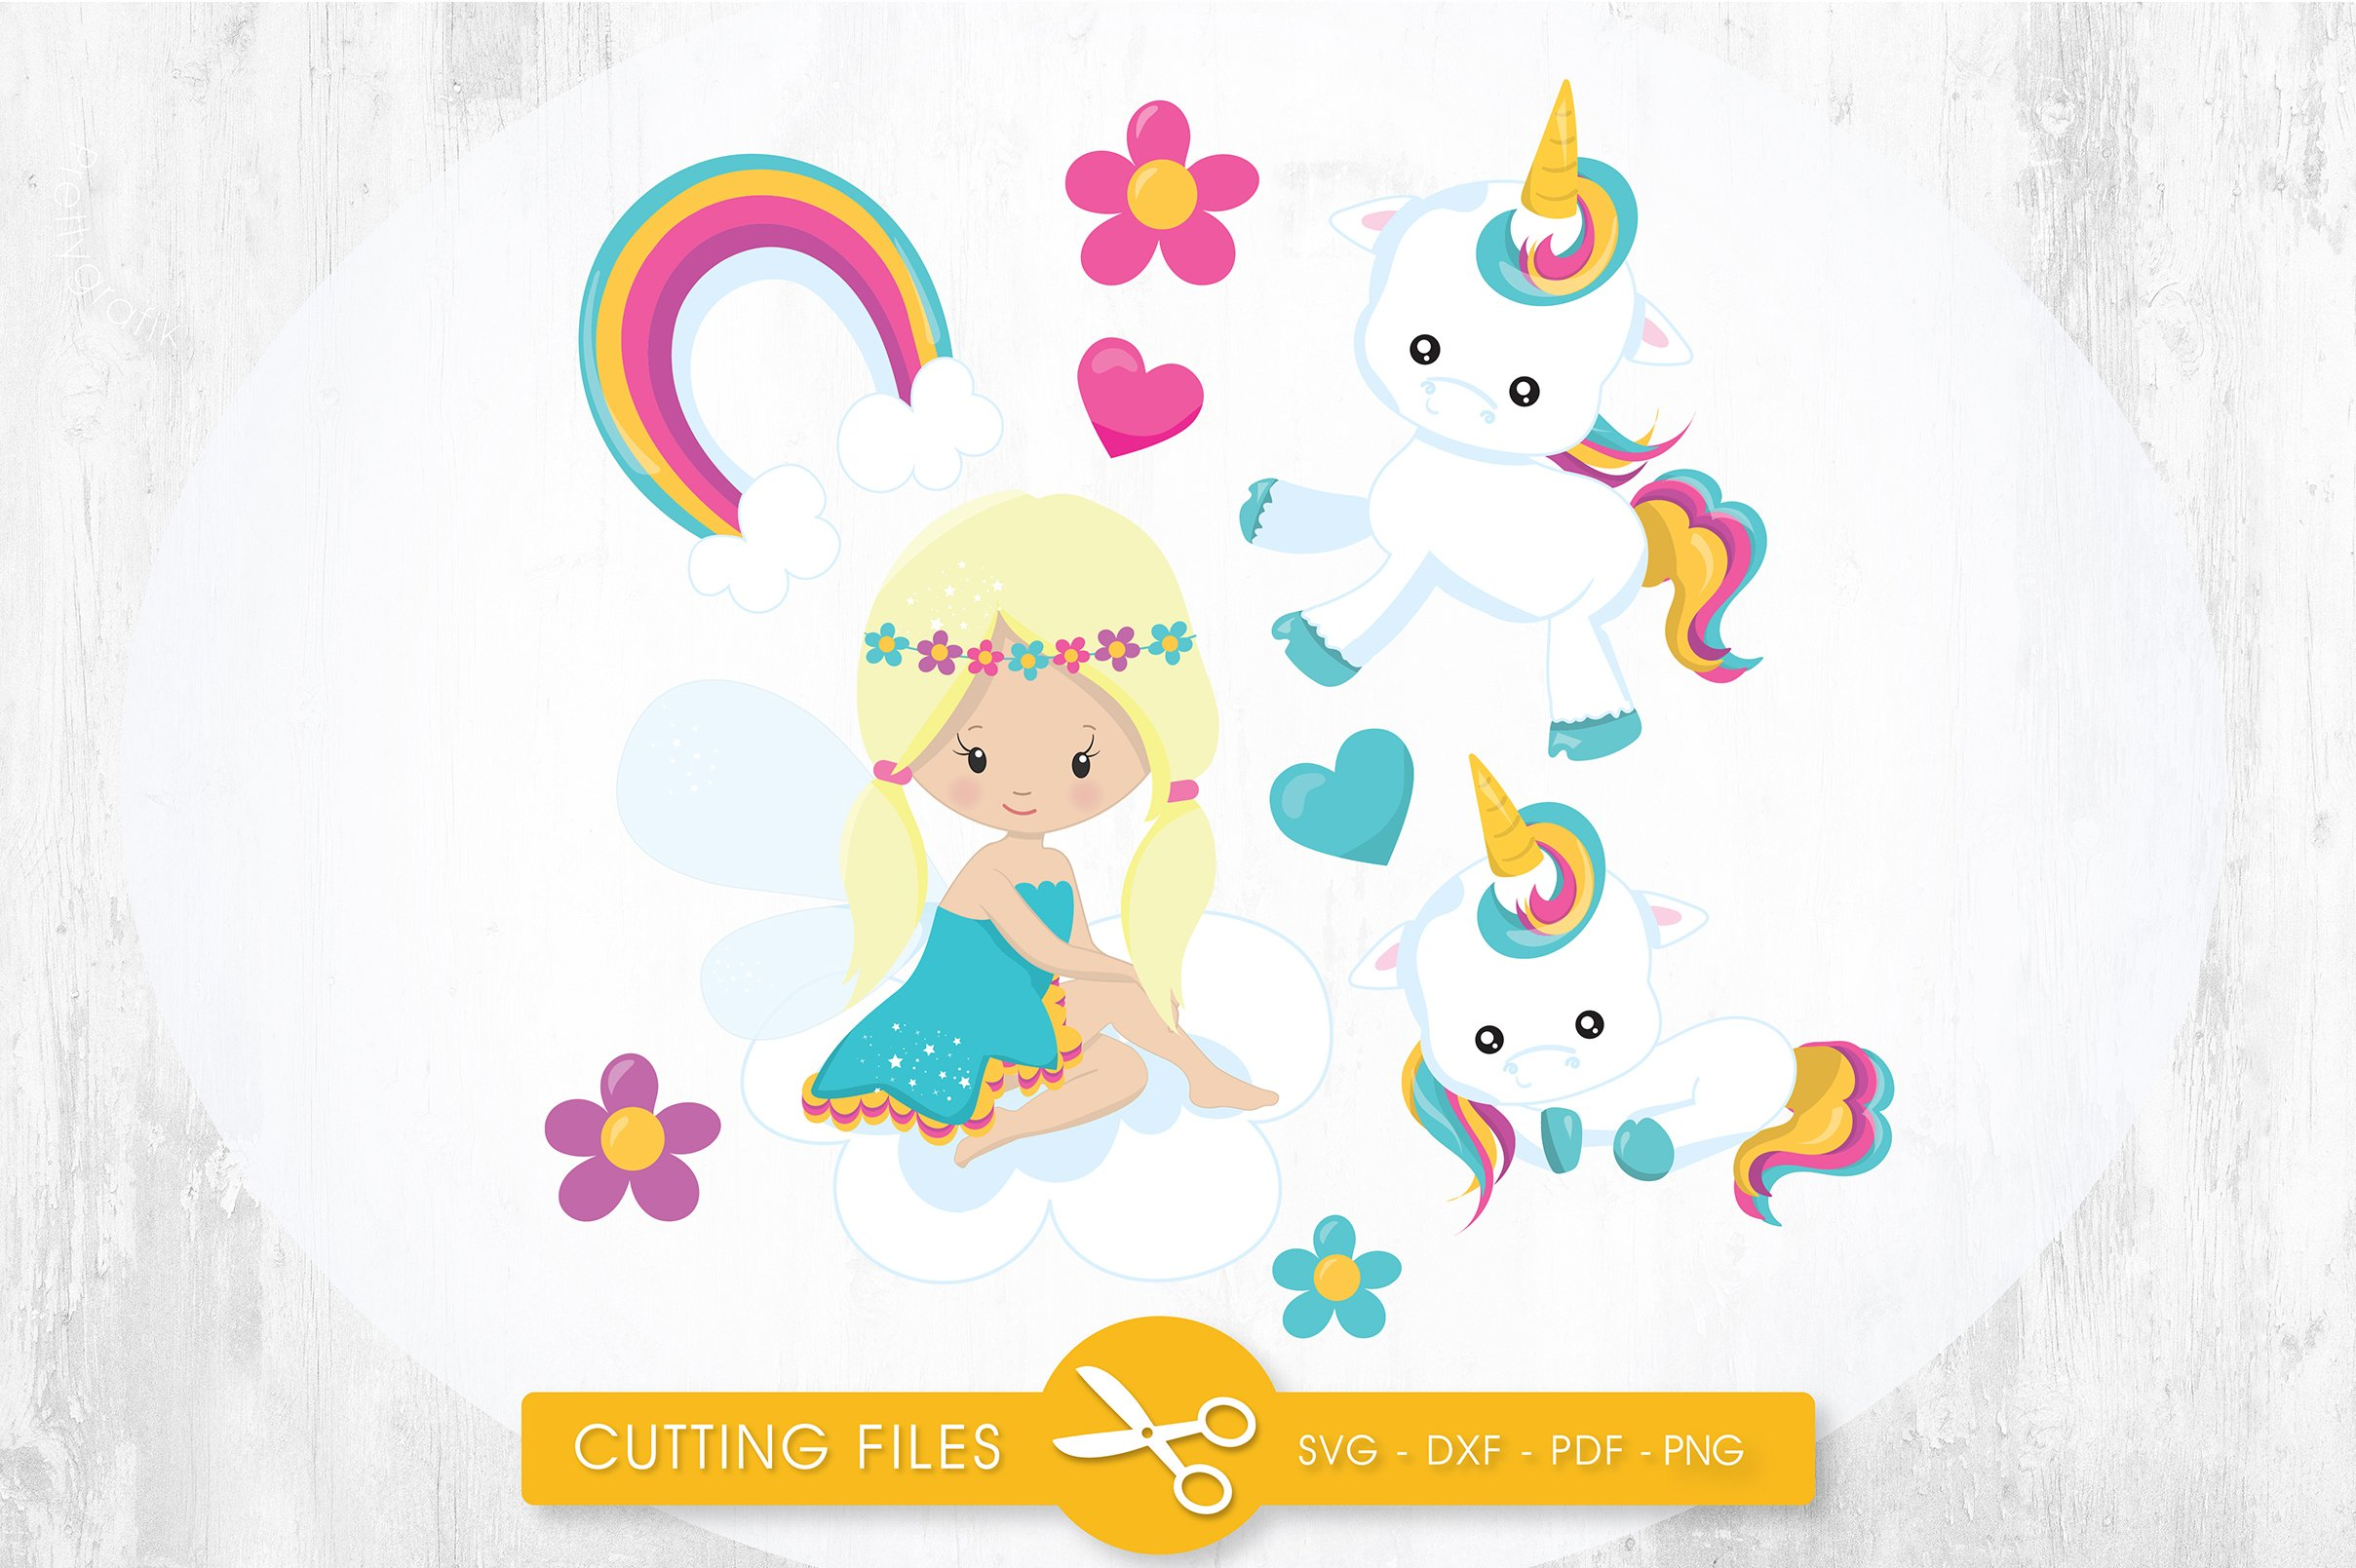 Unicorn Fairy Cutting Files Svg Dxf Pdf Eps Included Cut Files For Cricut And Silhouette Cutting Files Sg 106194 Svgs Design Bundles